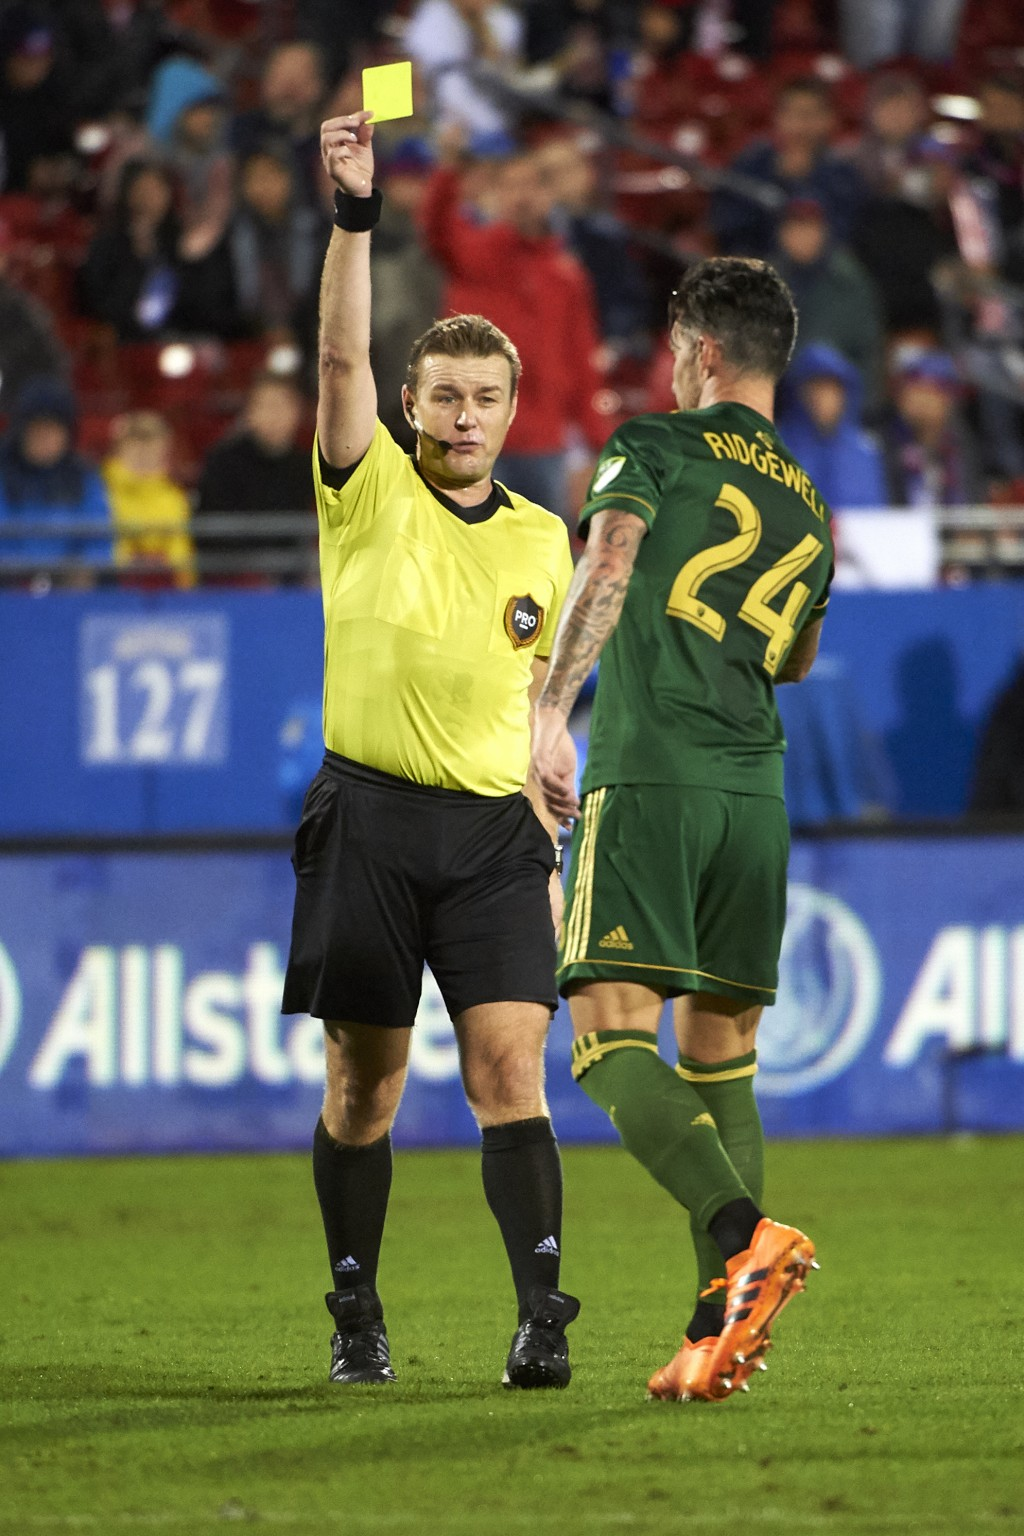 Portland Timbers defender Liam Ridgewell (24) receives a yellow card from referee Alan Kelly during the first half of an MLS soccer playoff match agai...